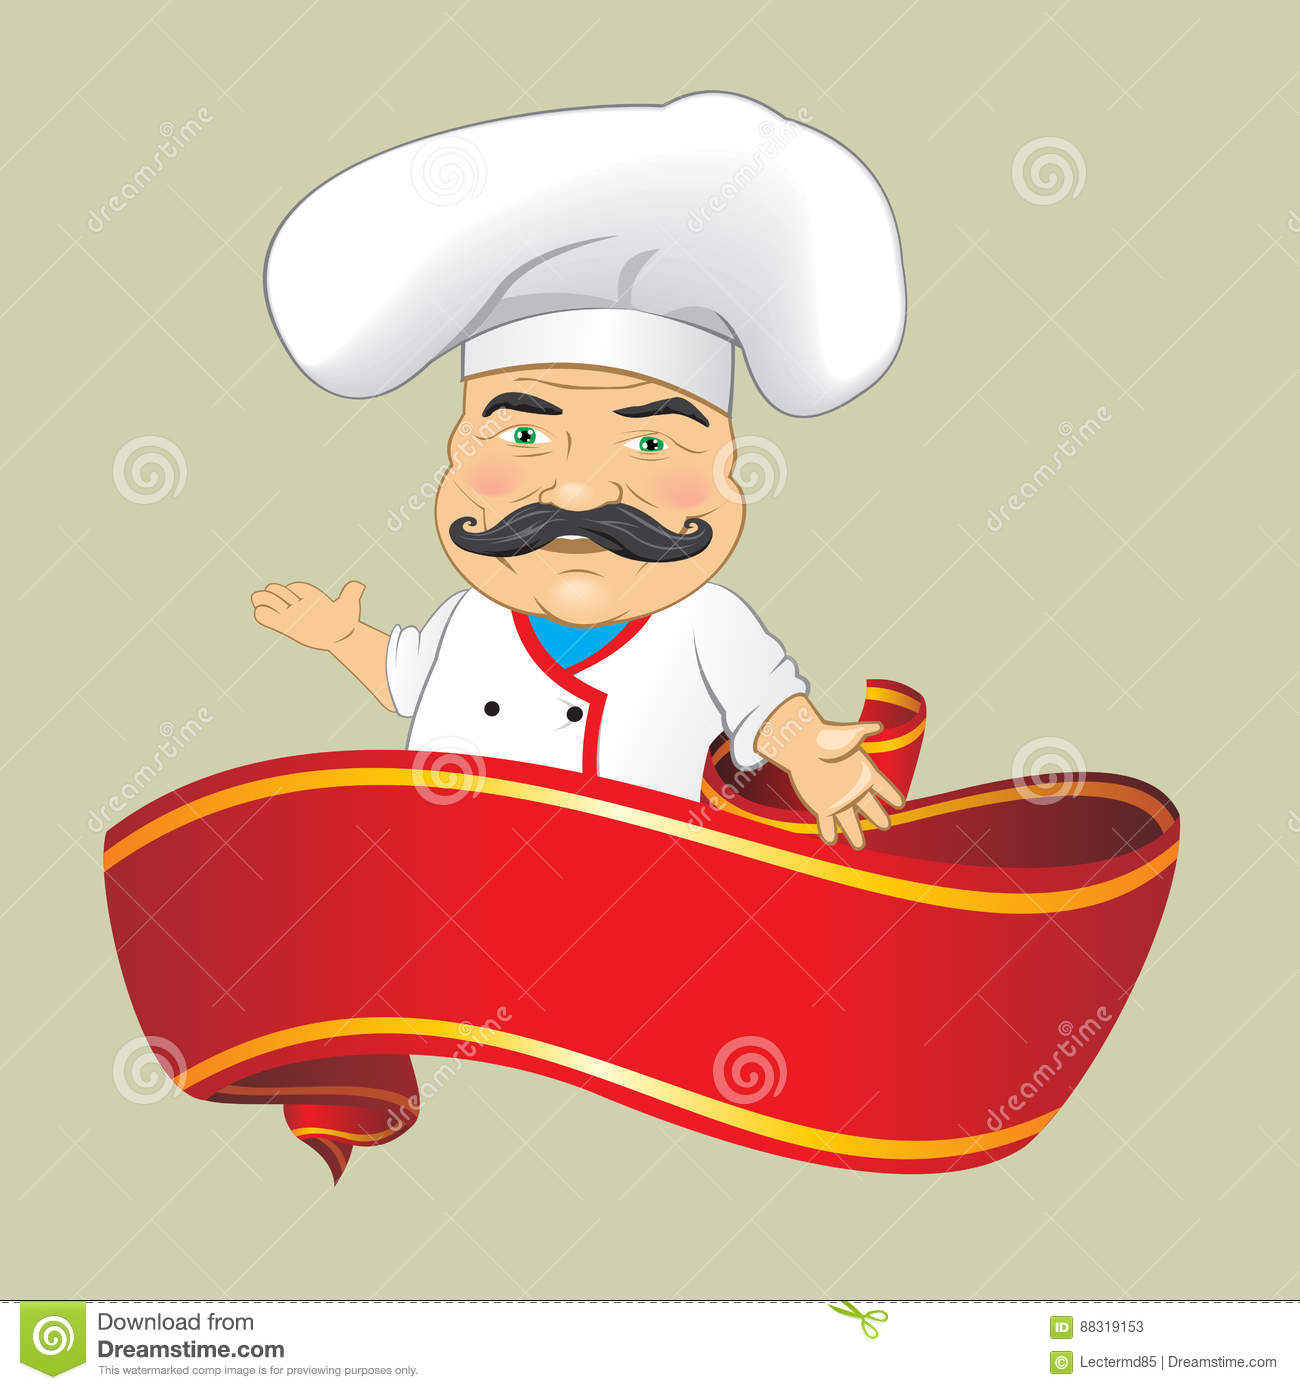 Cartoonsmart Character Design Illustrator : Vector chef cook serving food realistic cartoon character